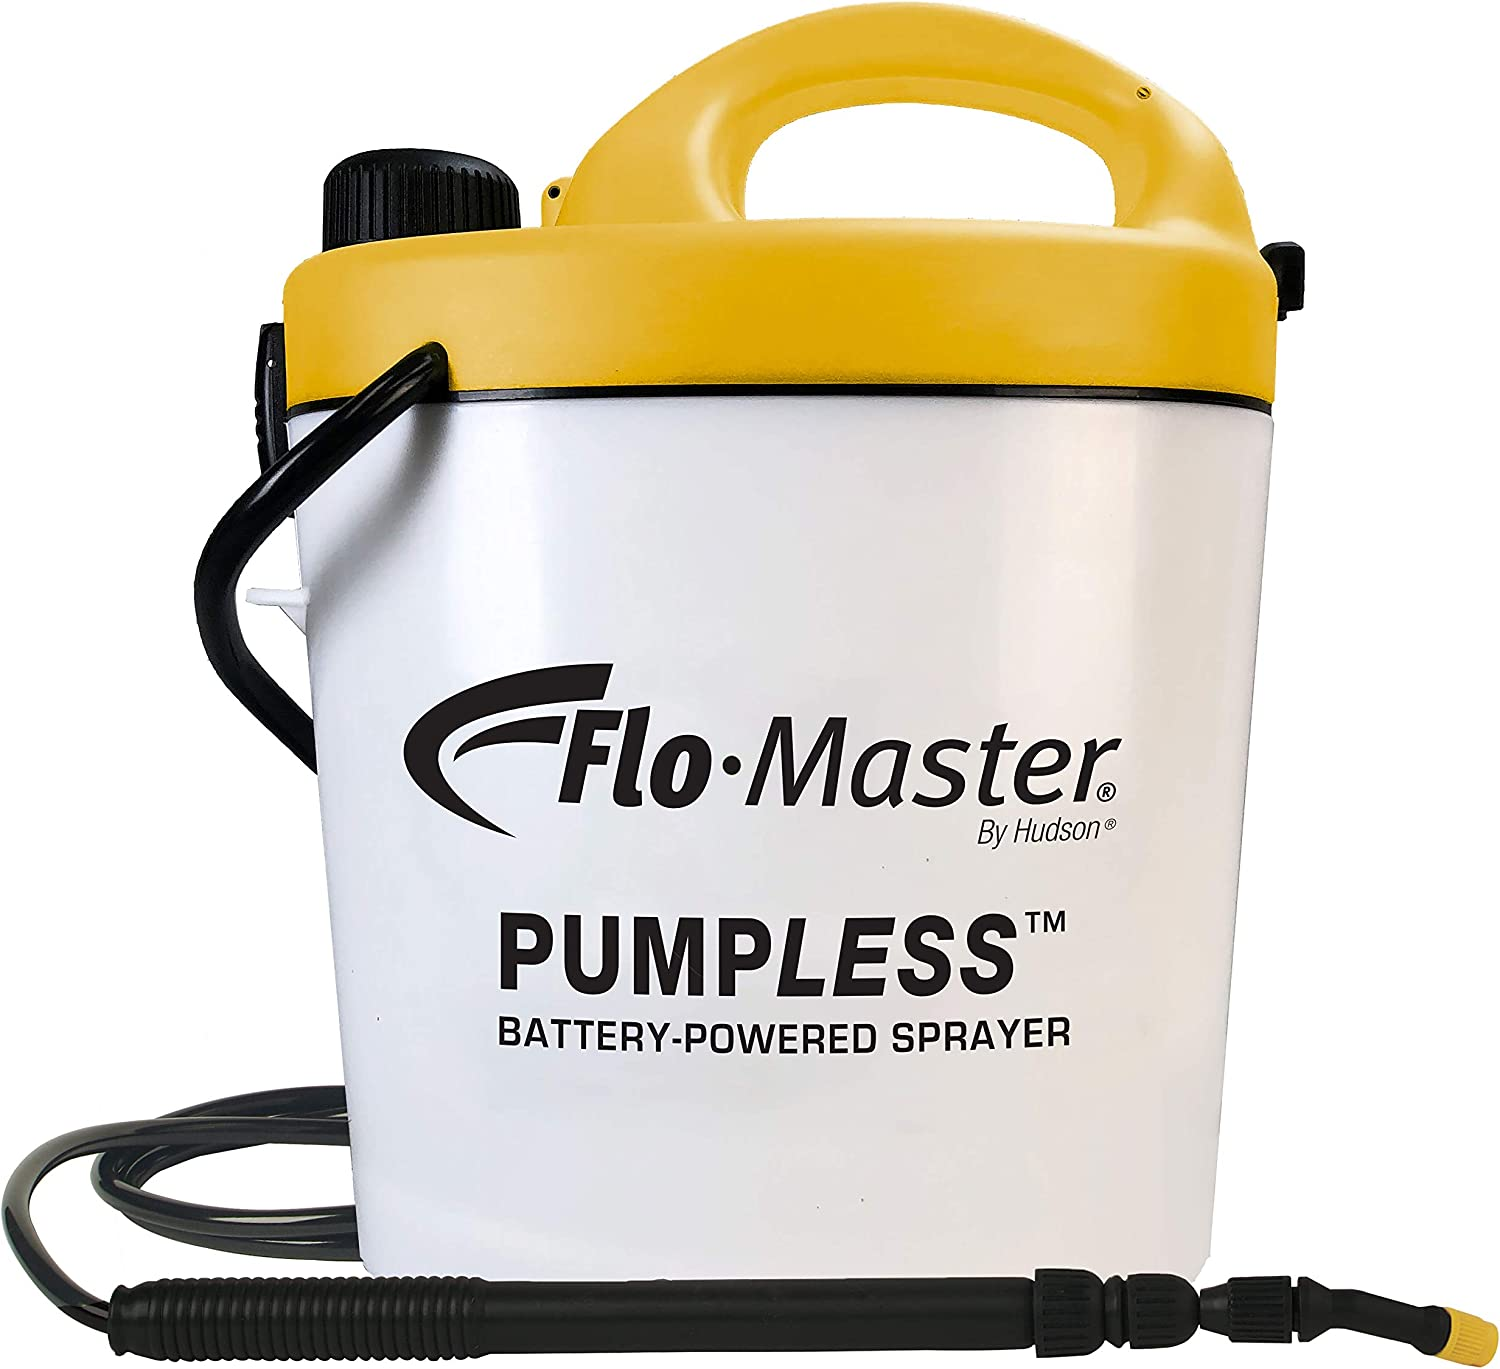 Flo-Master by Hudson 5BPL Pumpless 1.3 Gallon Battery Powered Sprayer, White